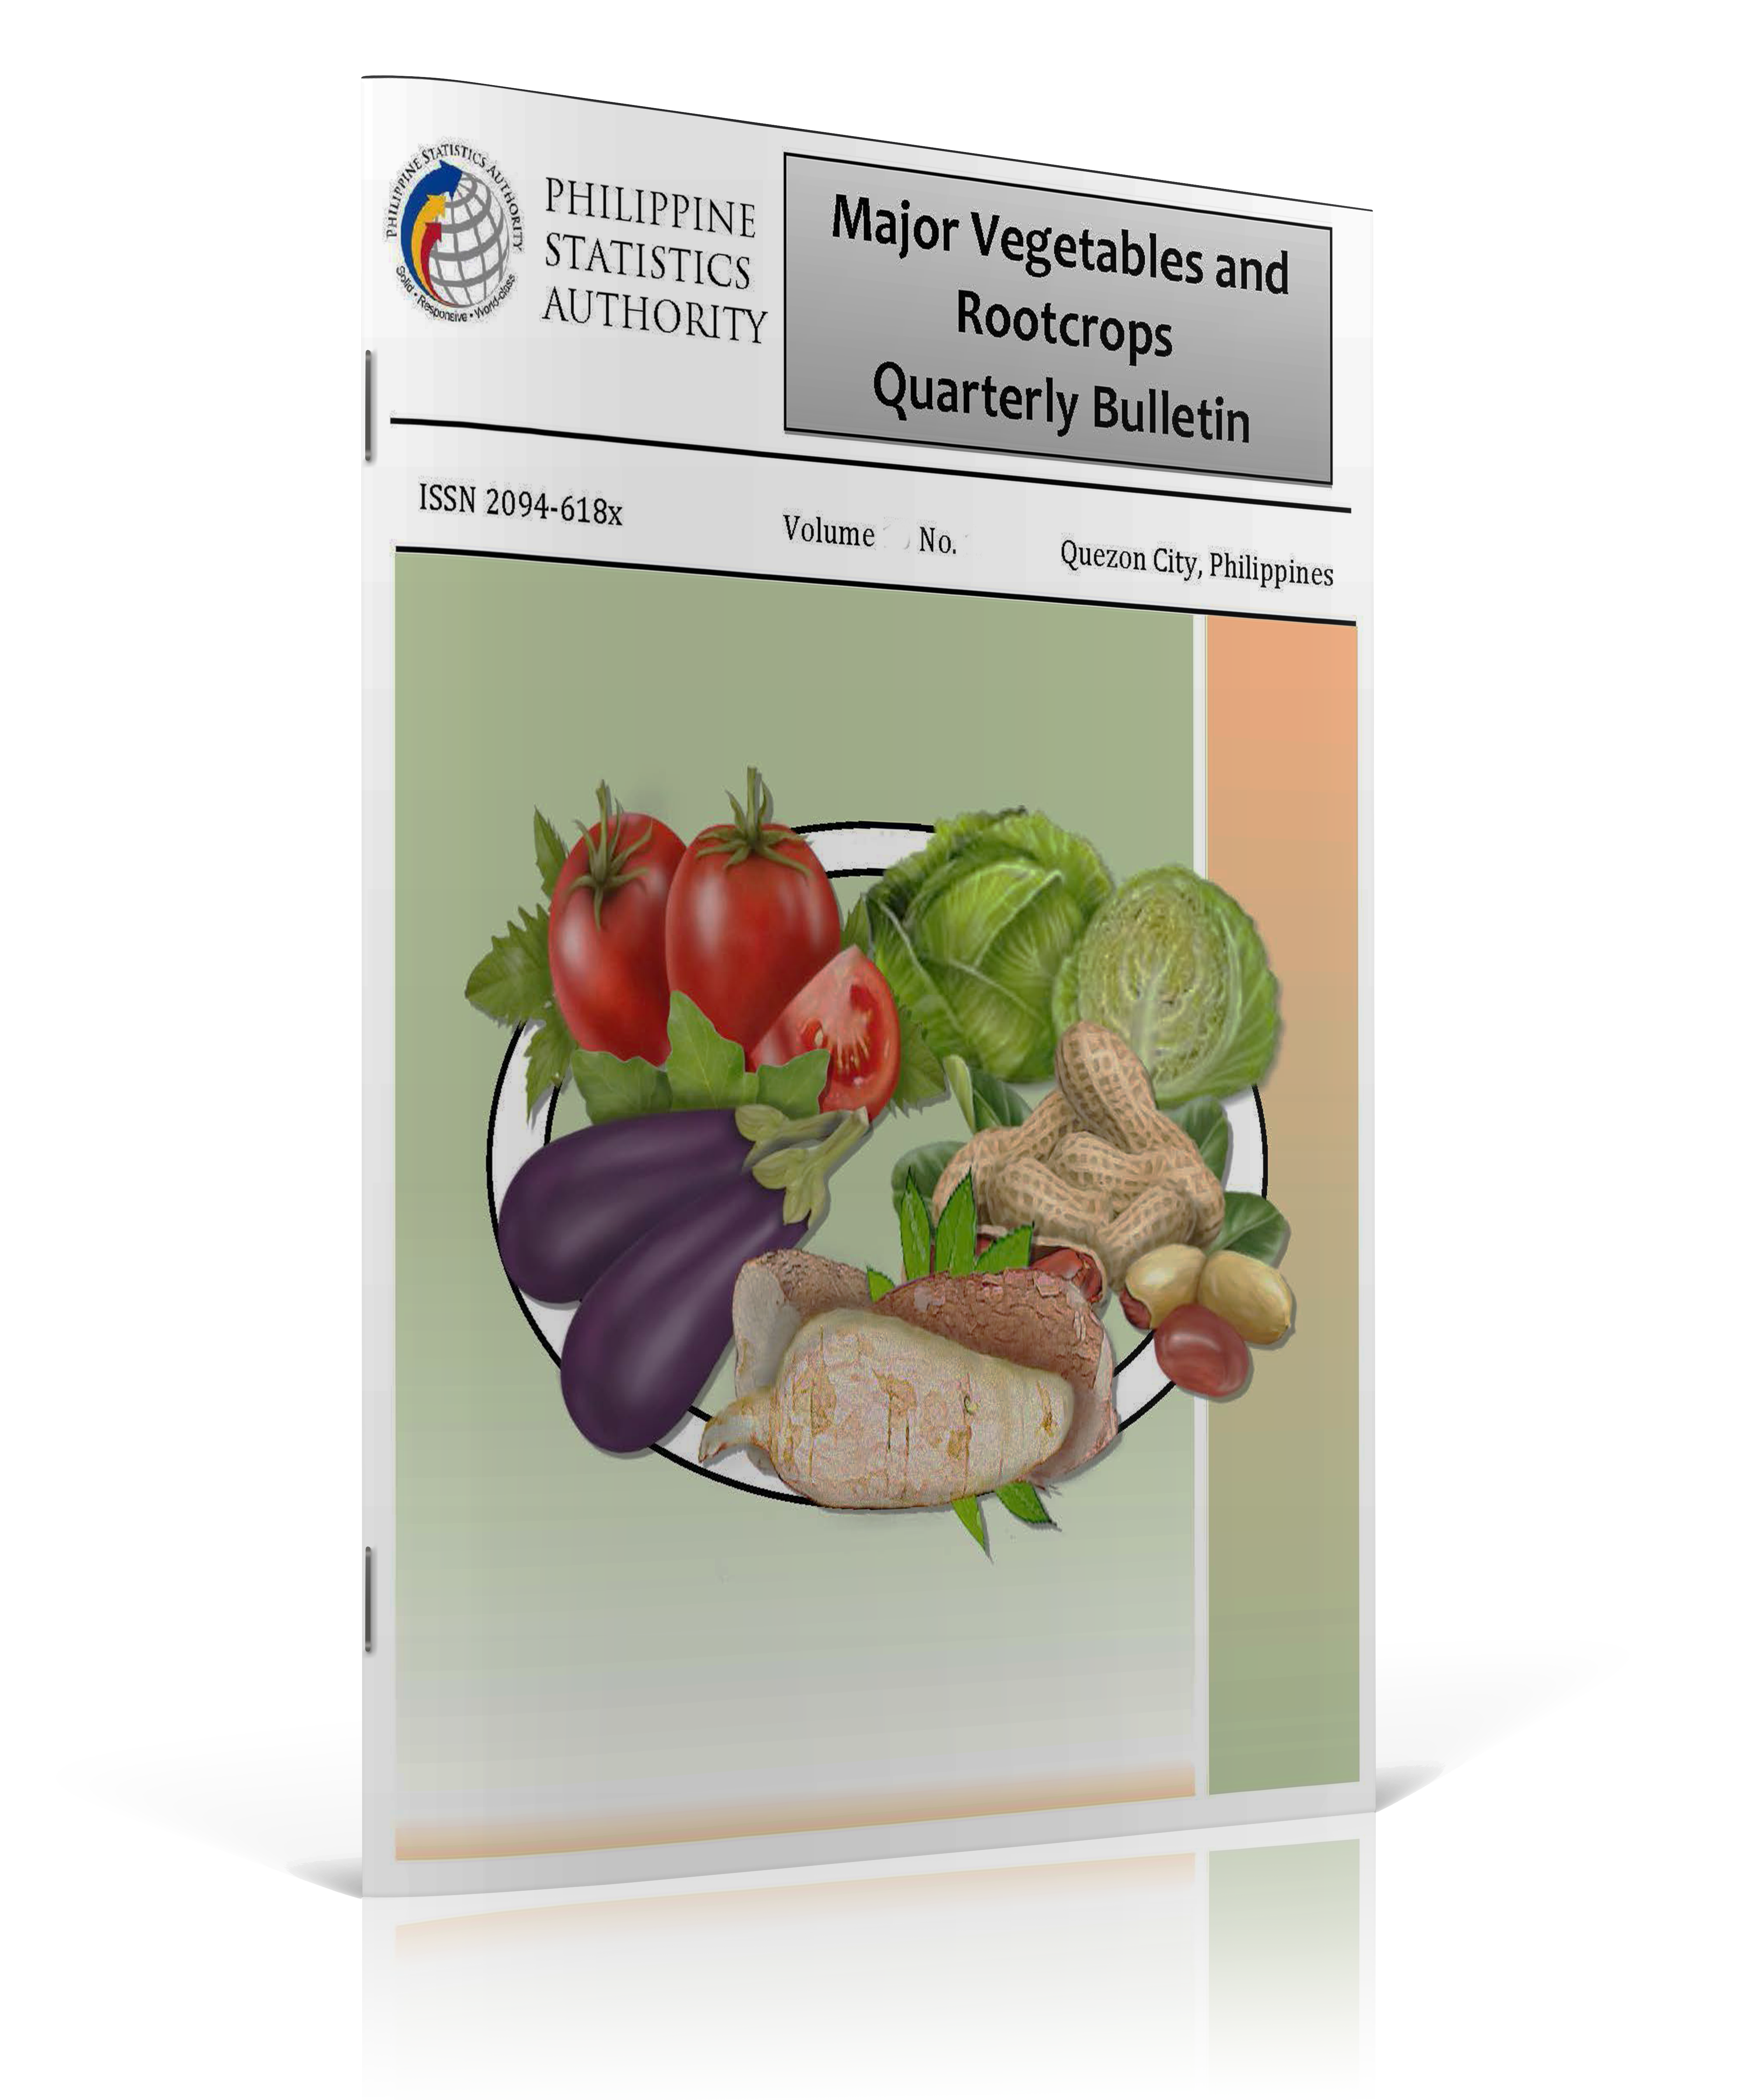 Major Vegetables and Rootcrops Quarterly Bulletin